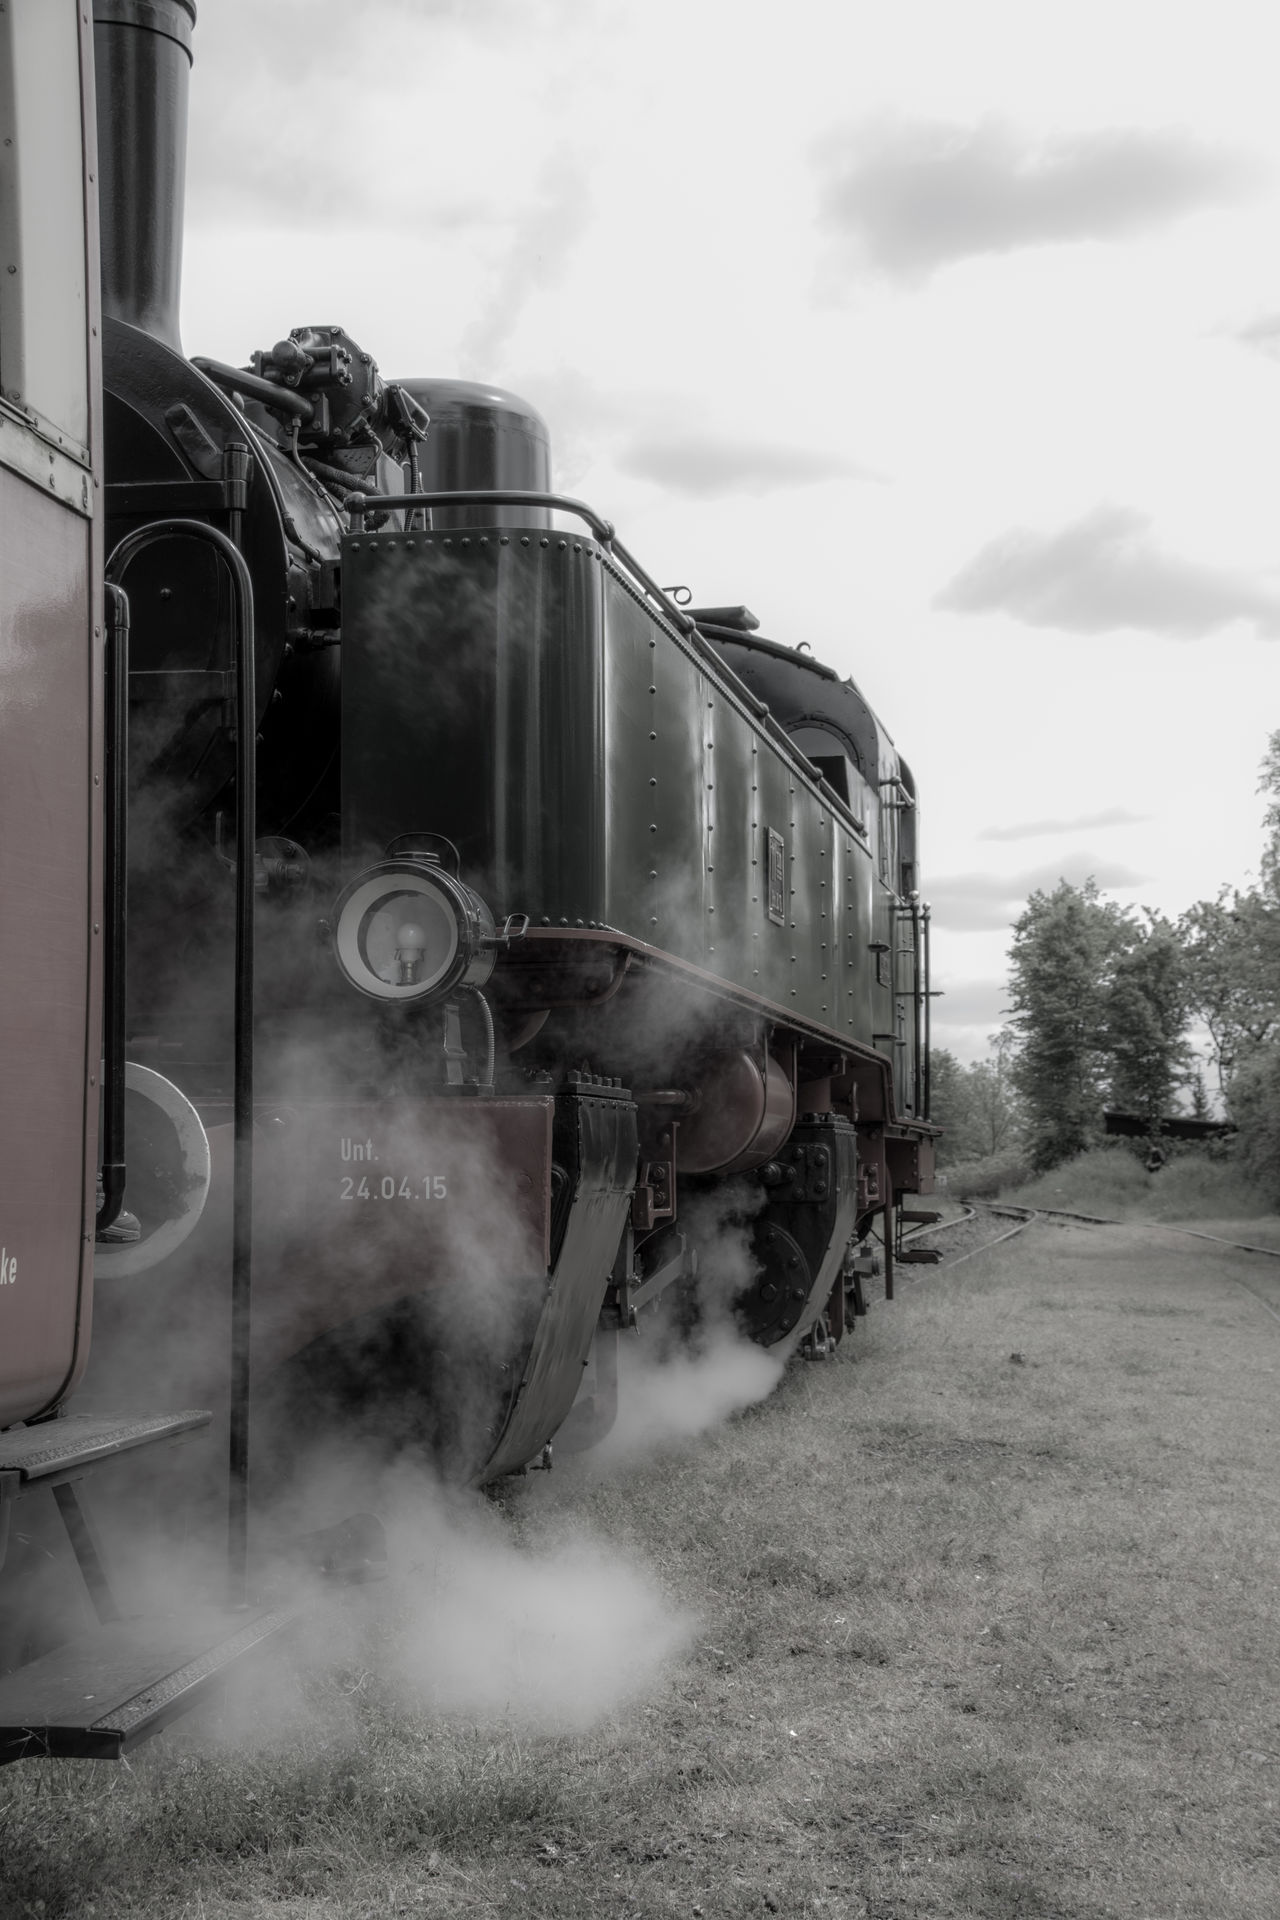 Vulkan-Express Brohltalbahn Dampflok Historic Train Land Vehicle Oldtimer Steam Locomotive Steam Trains Vulkanexpress